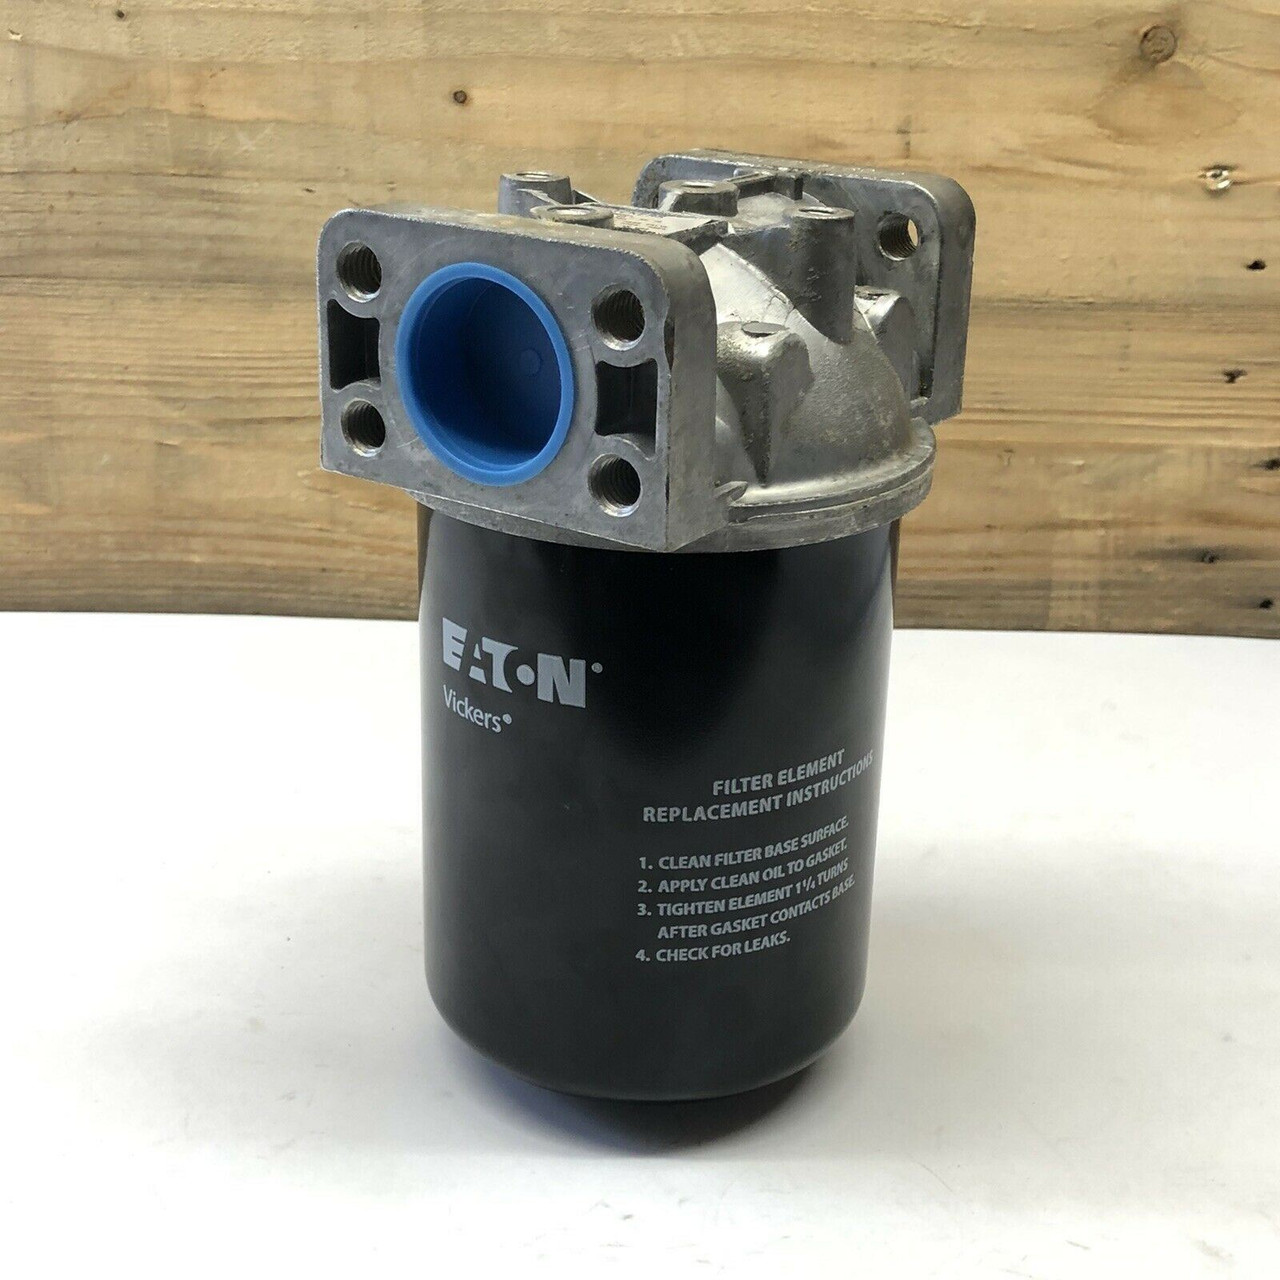 Filter Housing By-Pass Valve (with Eaton 941190 Filter) ORFS-60F-3M10 Vickers